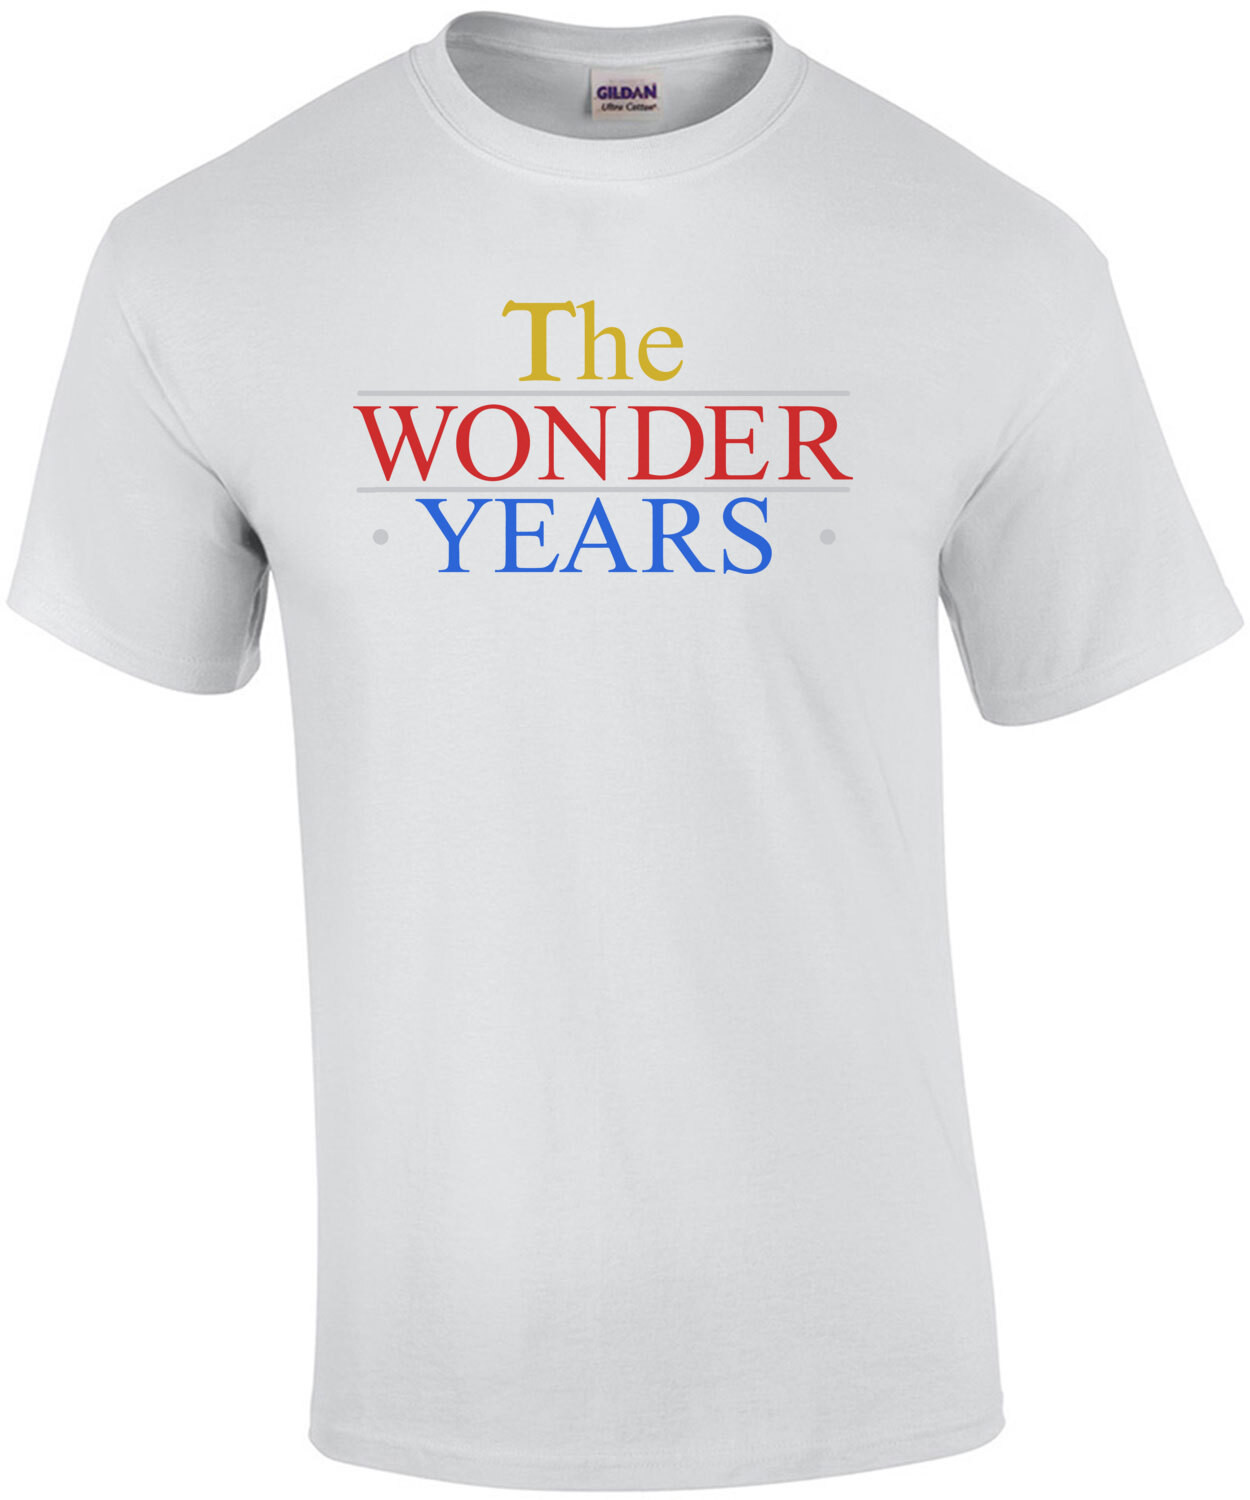 The Wonder Years - 80's T-Shirt